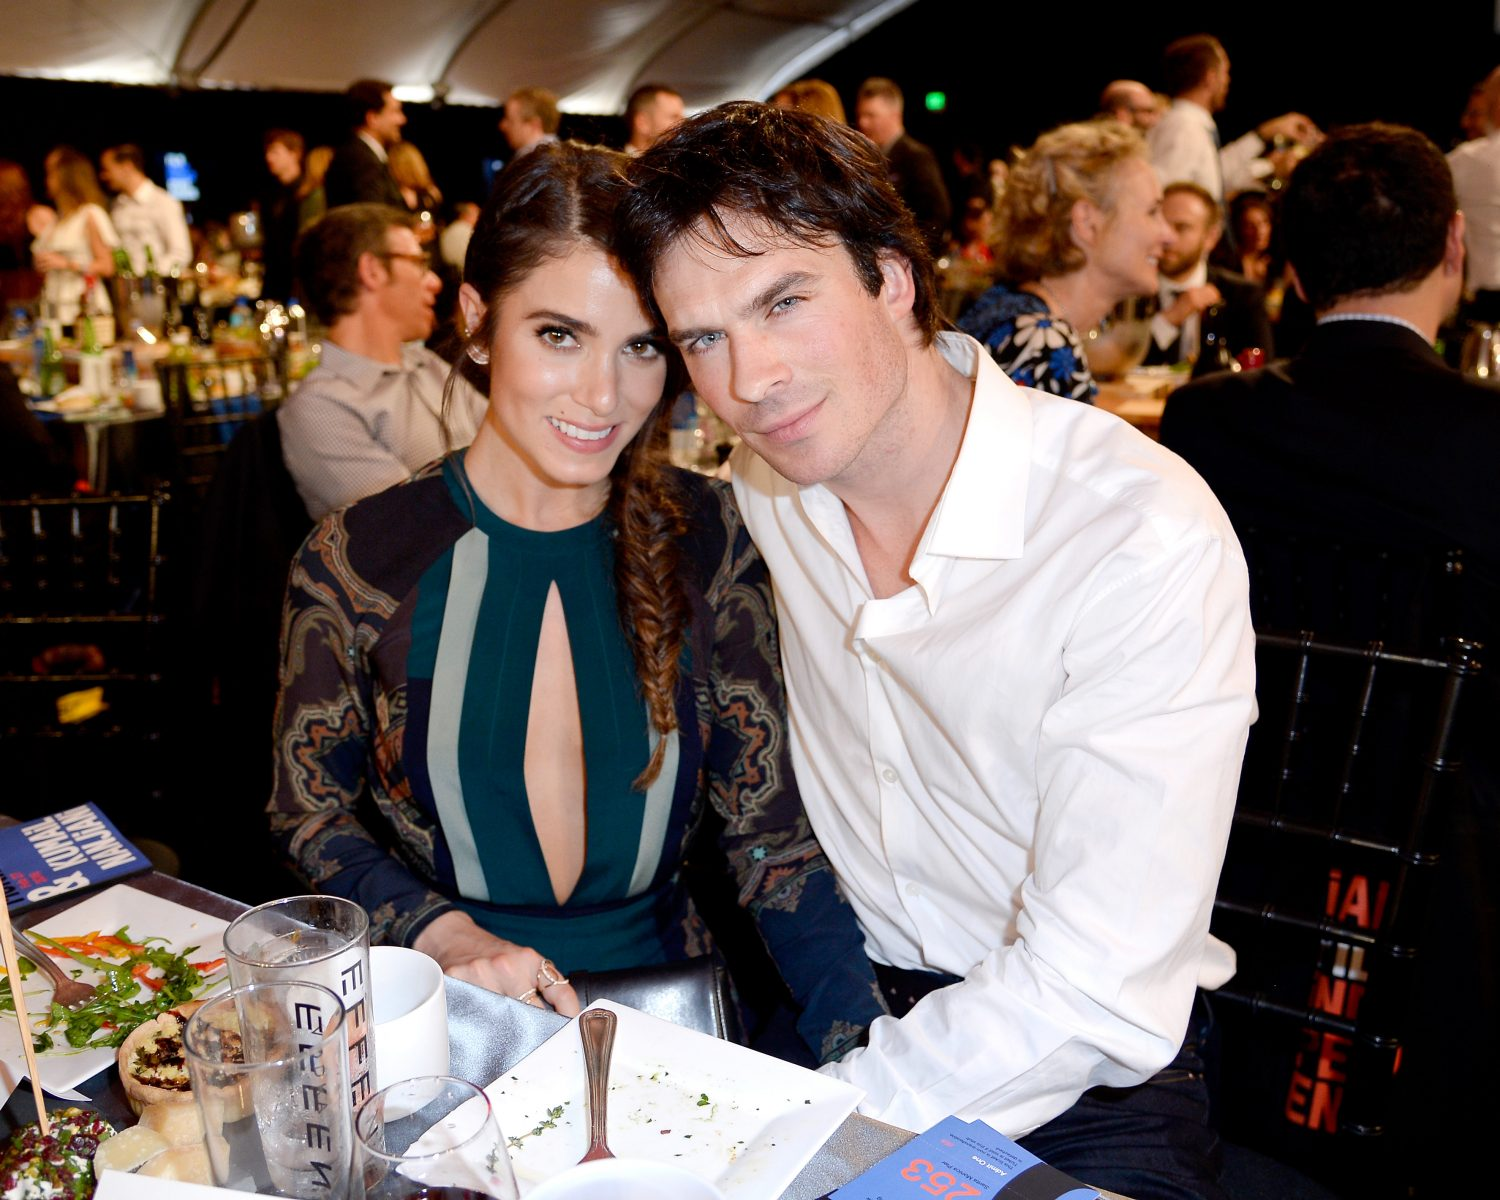 Nikki reed and ian somerhalder celebrate 2nd wedding anniversary nikki reed ian somerhalder junglespirit Gallery